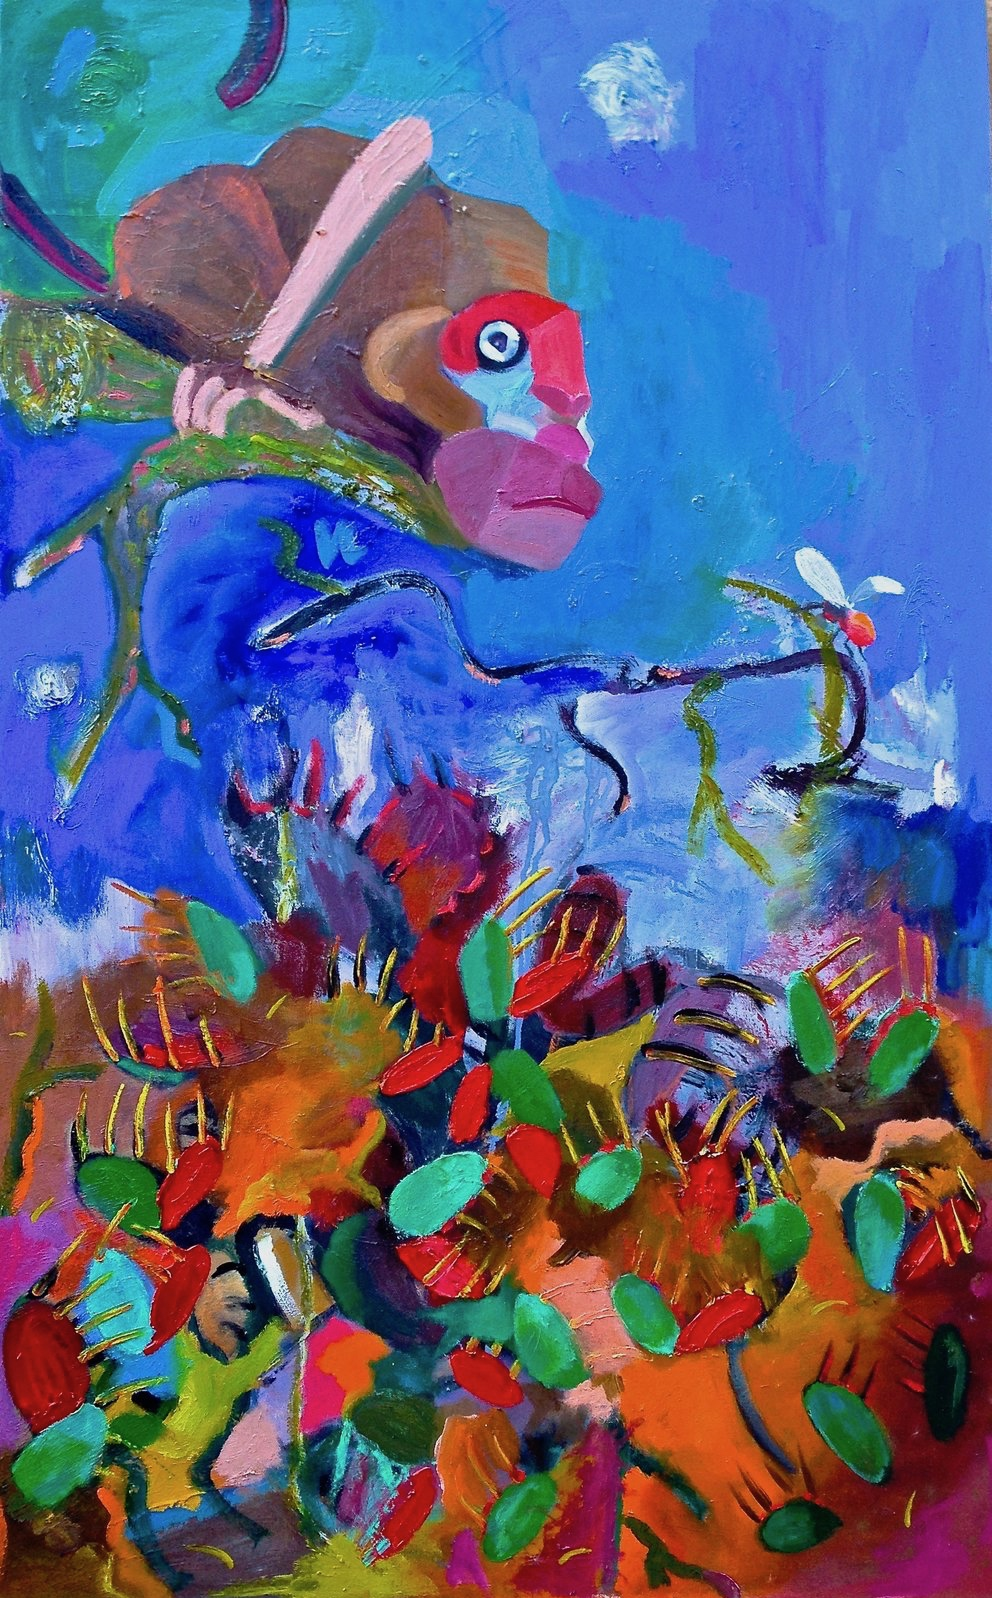 """Monkey and the Venus flytraps"" 48""x30"" oil on canvas, 2016  (price on request)"